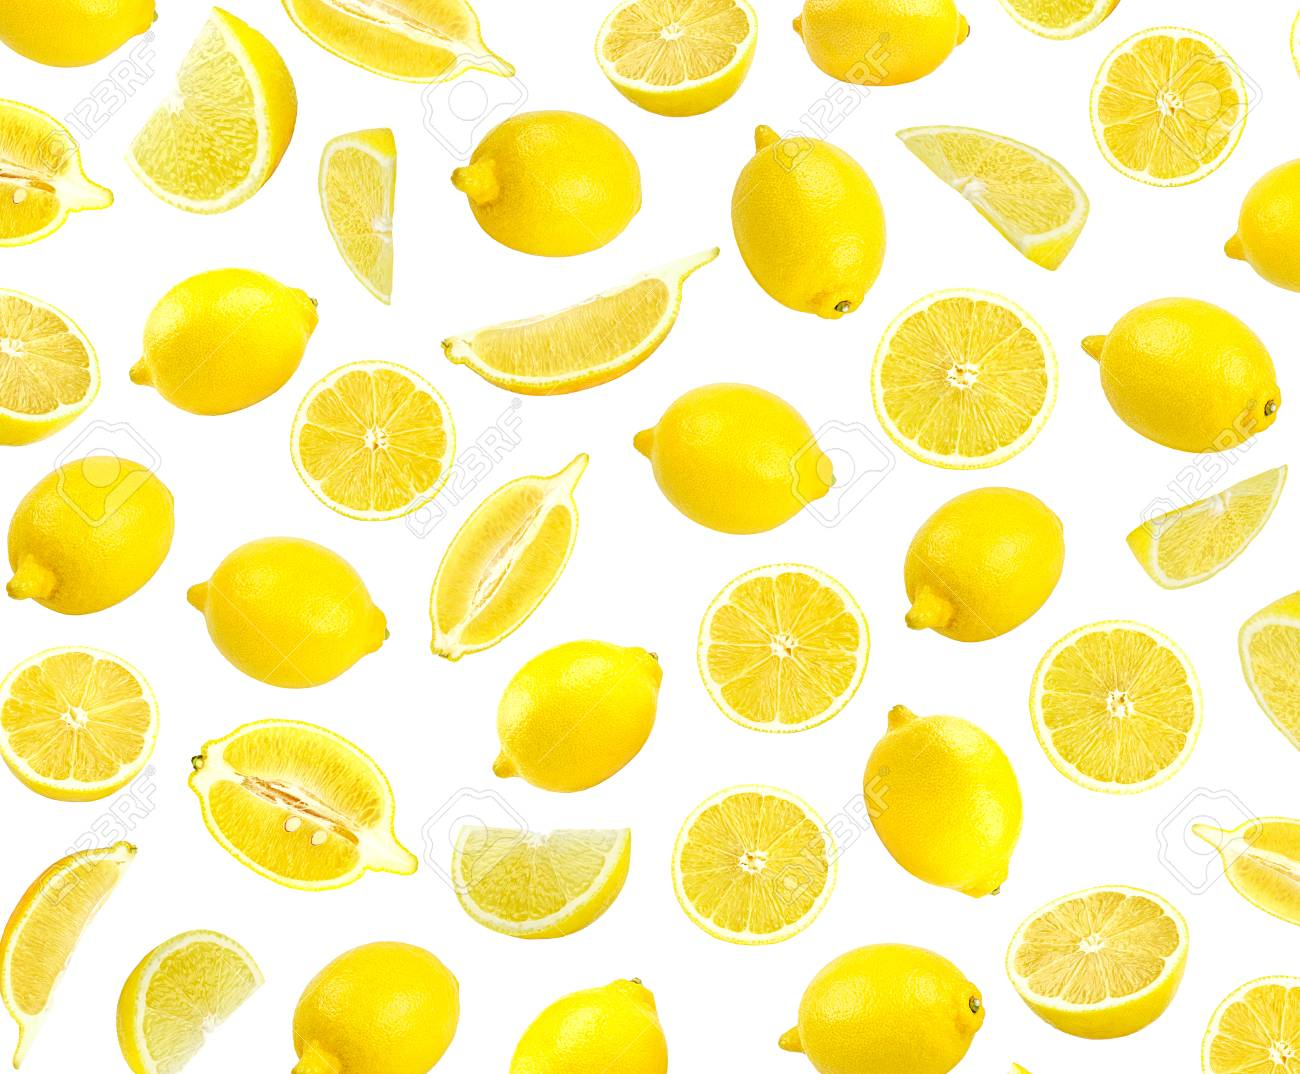 fresh yellow lemon photographic pattern lemon wallpaper isolated stock photo picture and royalty free image image 101096658 fresh yellow lemon photographic pattern lemon wallpaper isolated